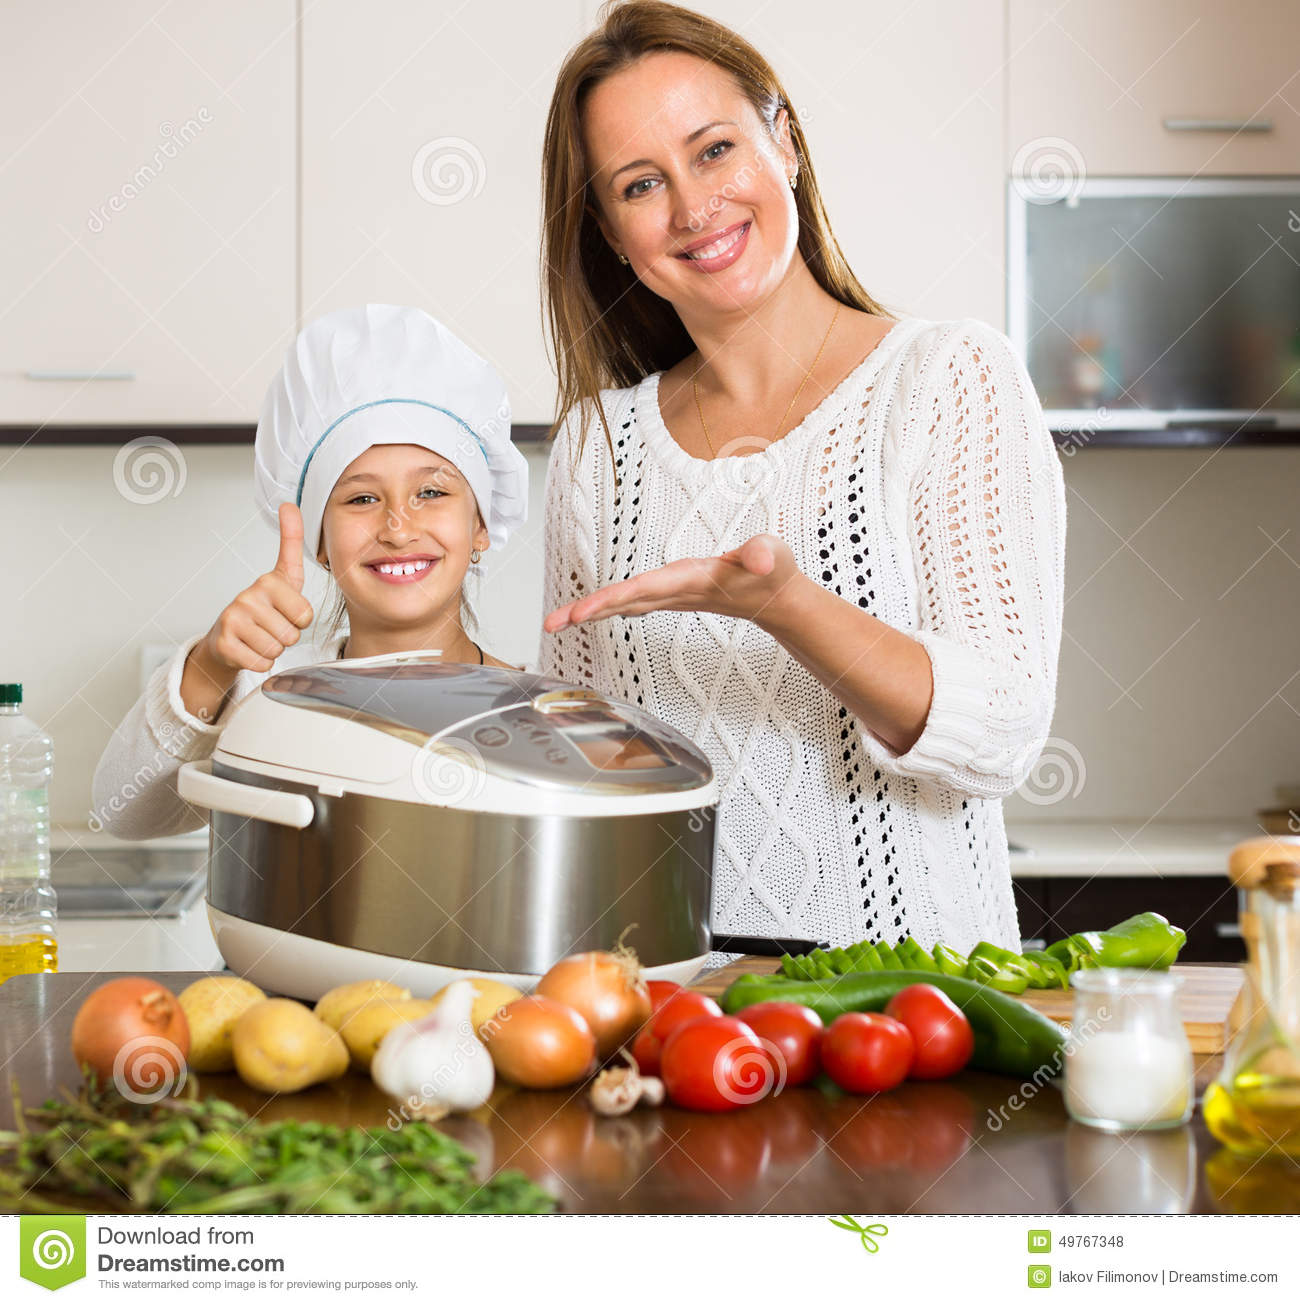 essay on helping mother in kitchen A kitchen garden produces fresh fruits, vegetables and herbs for delicious,  healthy meals here's what you need to know to start a kitchen garden.